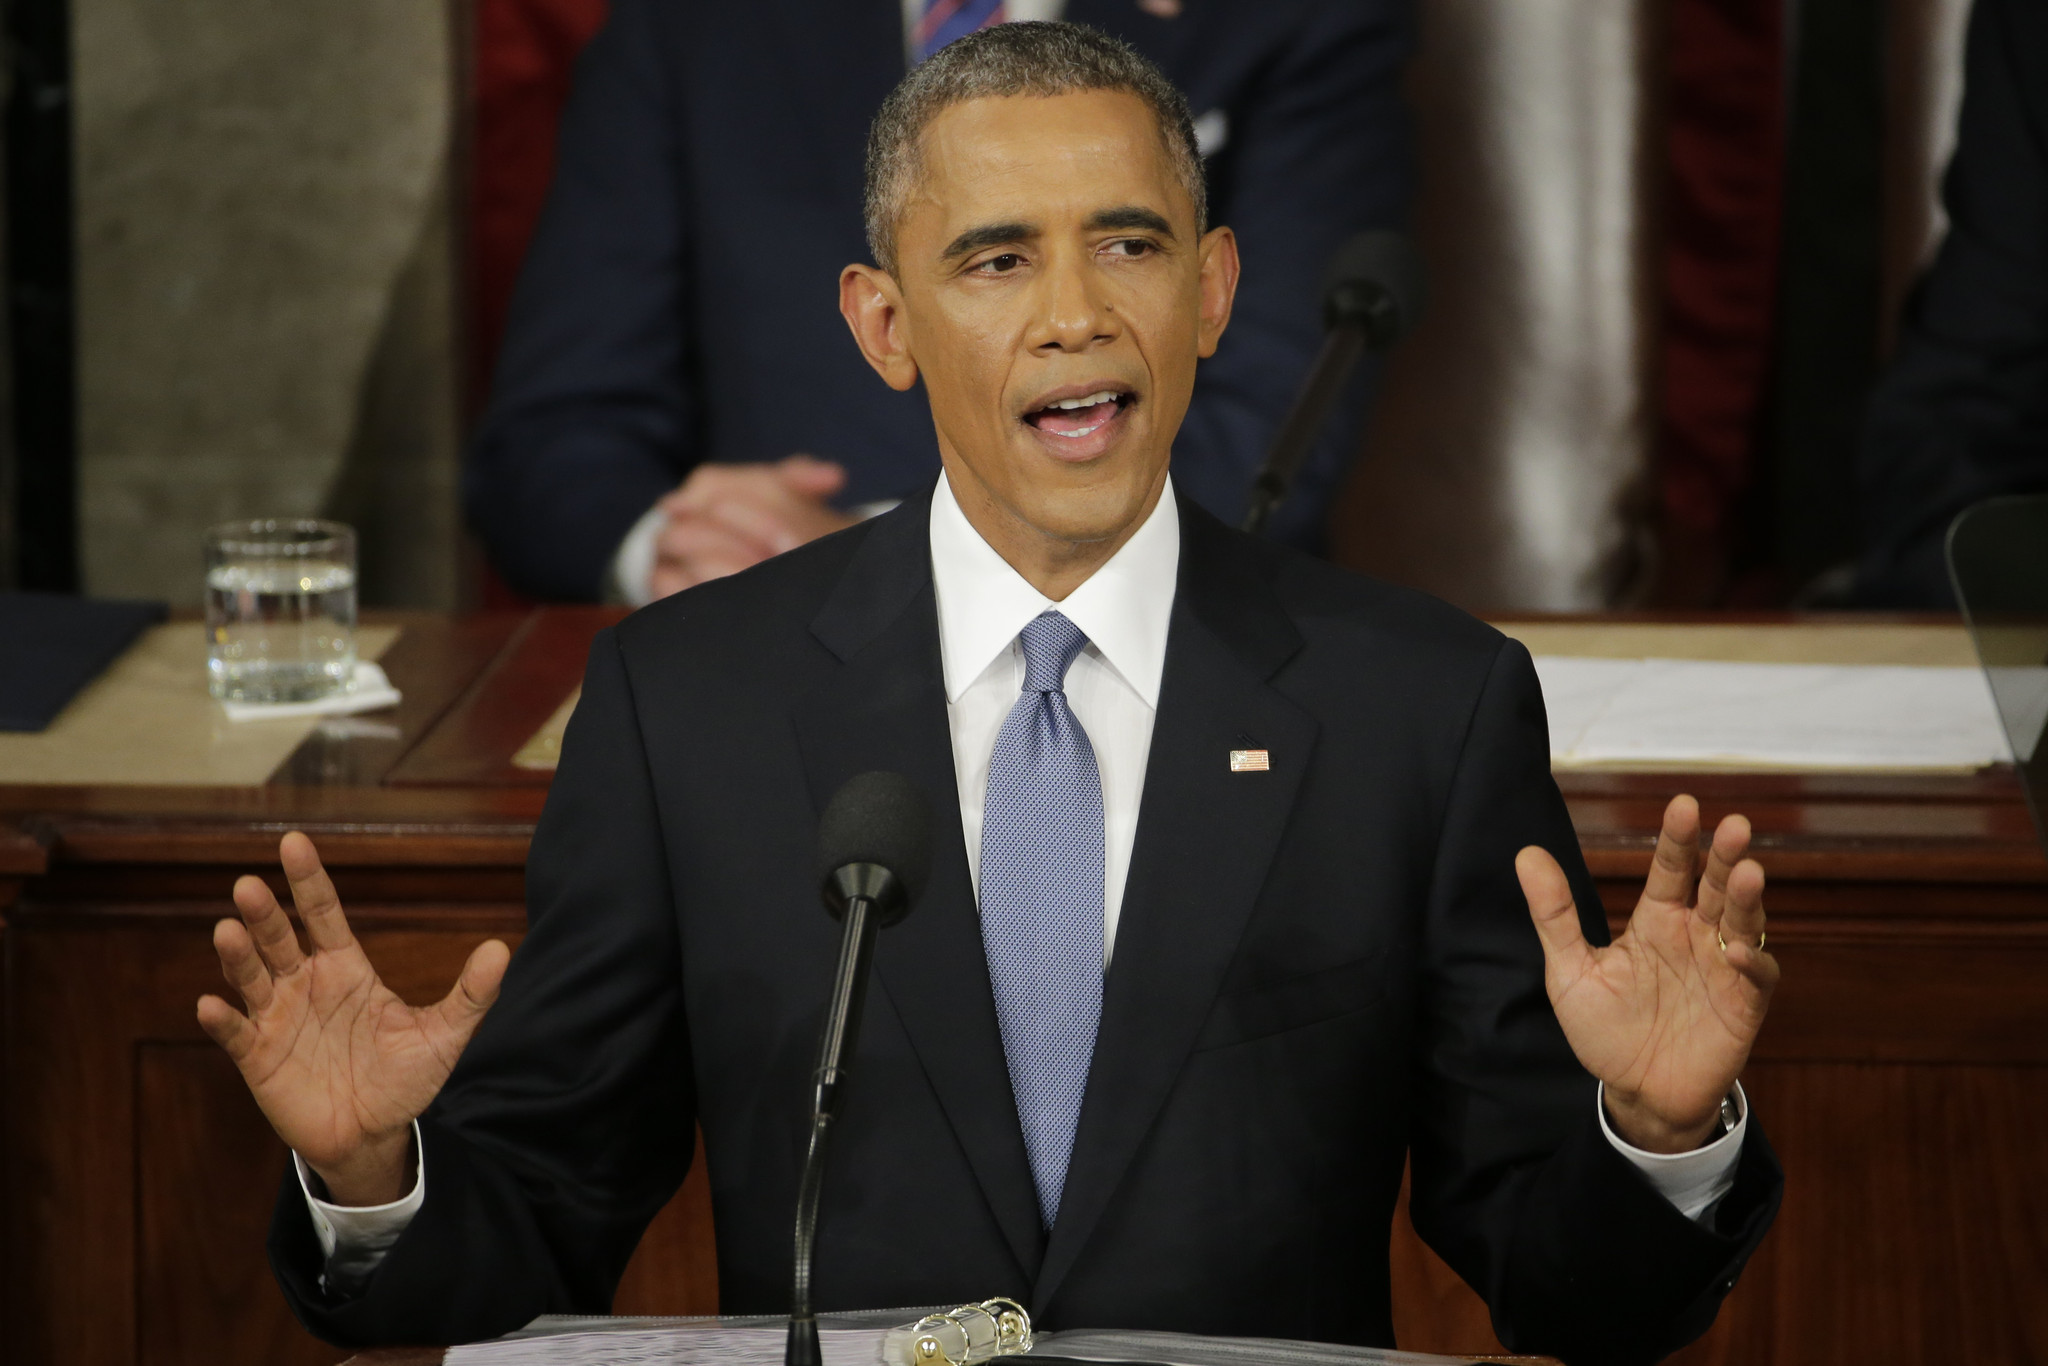 a review of president barrack obamas state of the union address President barack obama state of the union address critique  america on the current state of the union the president enlightened  barrack obama was born.